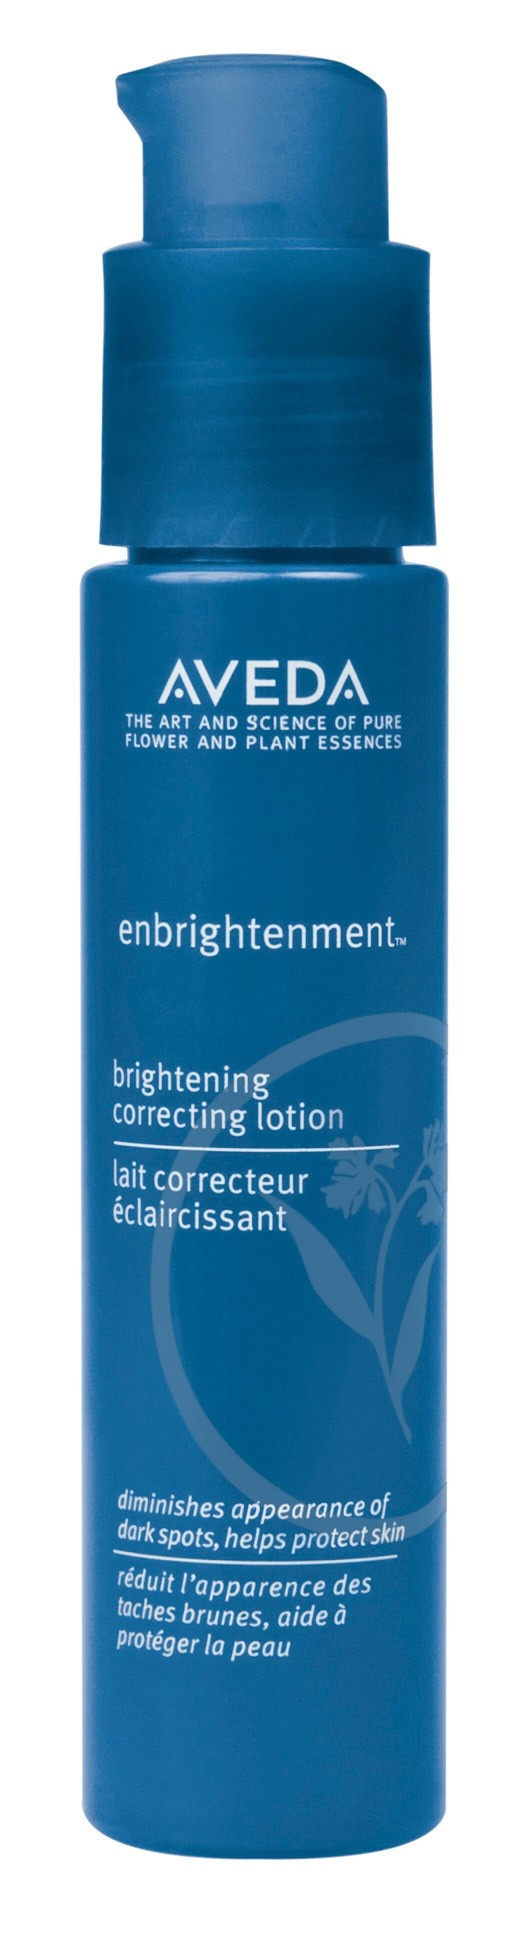 Aveda - Enbrightenment Brightening Correcting Lotion